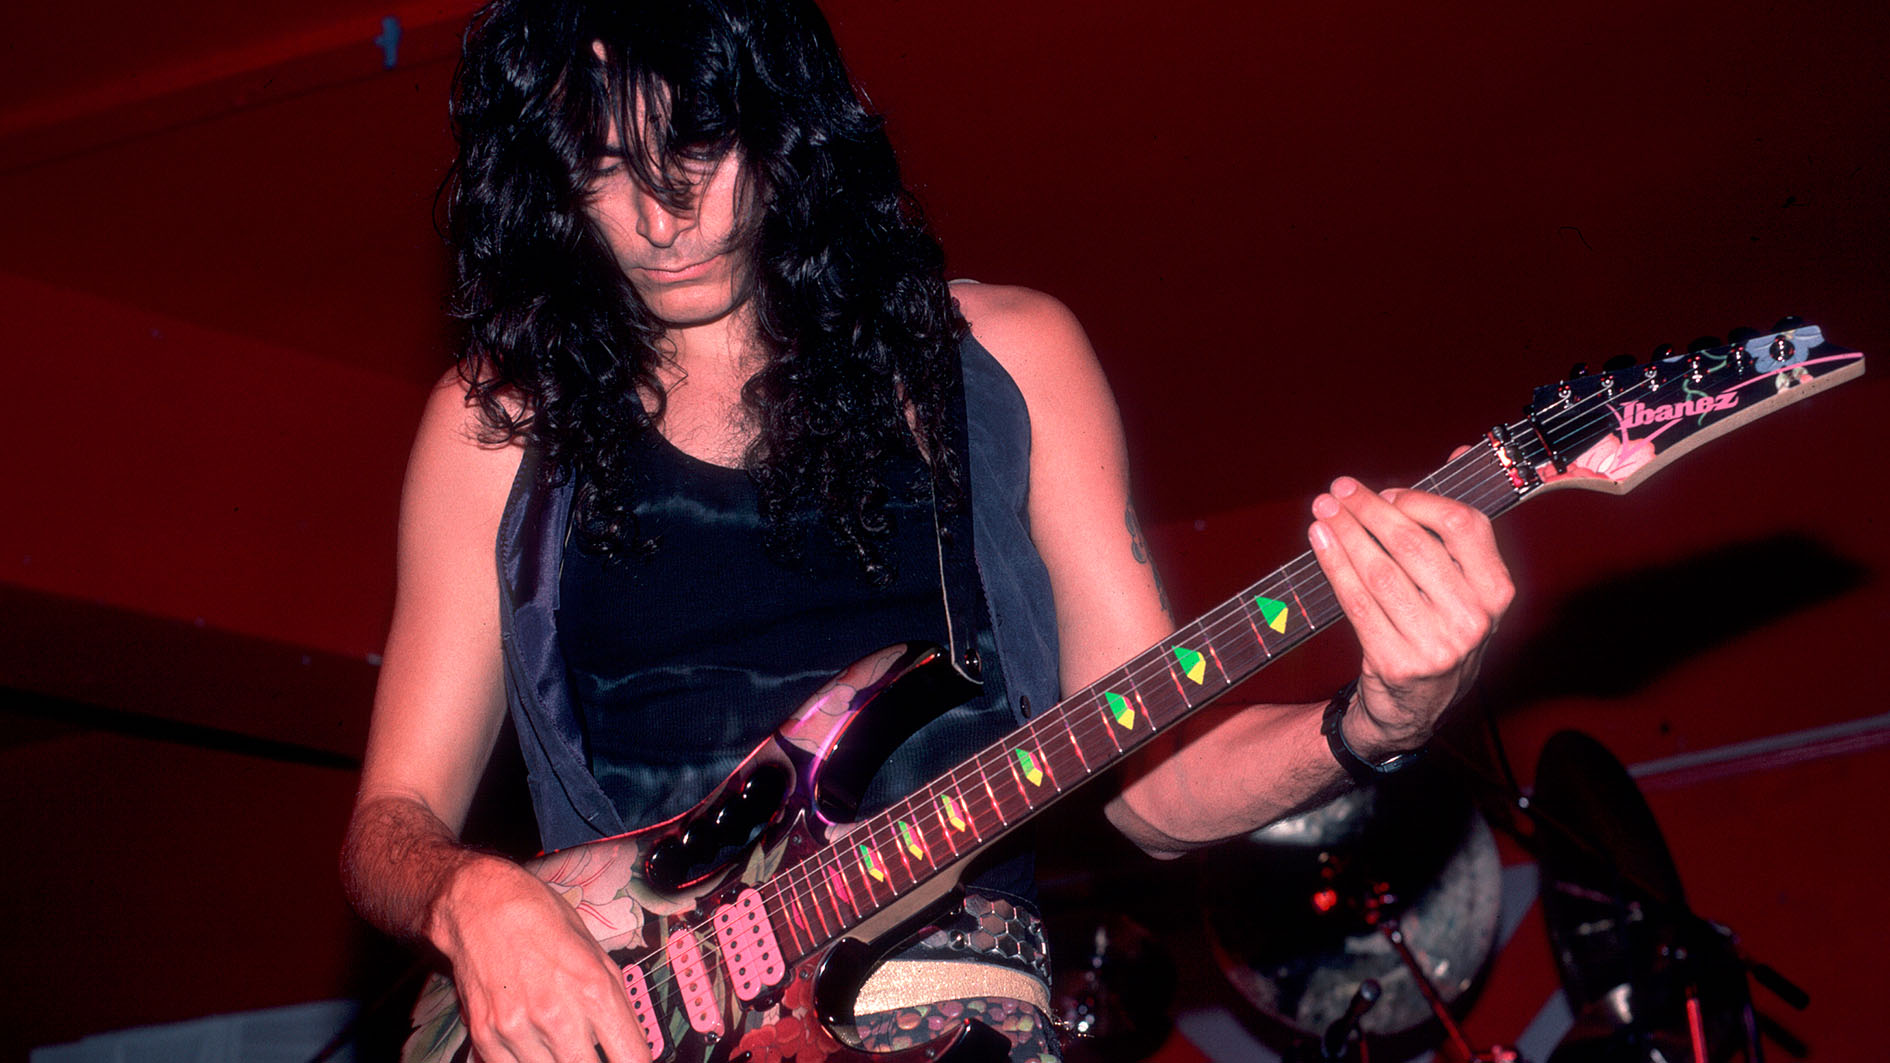 Steve Vai On His Time In Whitesnake There Was Real Aggression And Control In My Playing I Just Remember Thinking It Was Never Good Enough Back Then Guitar World